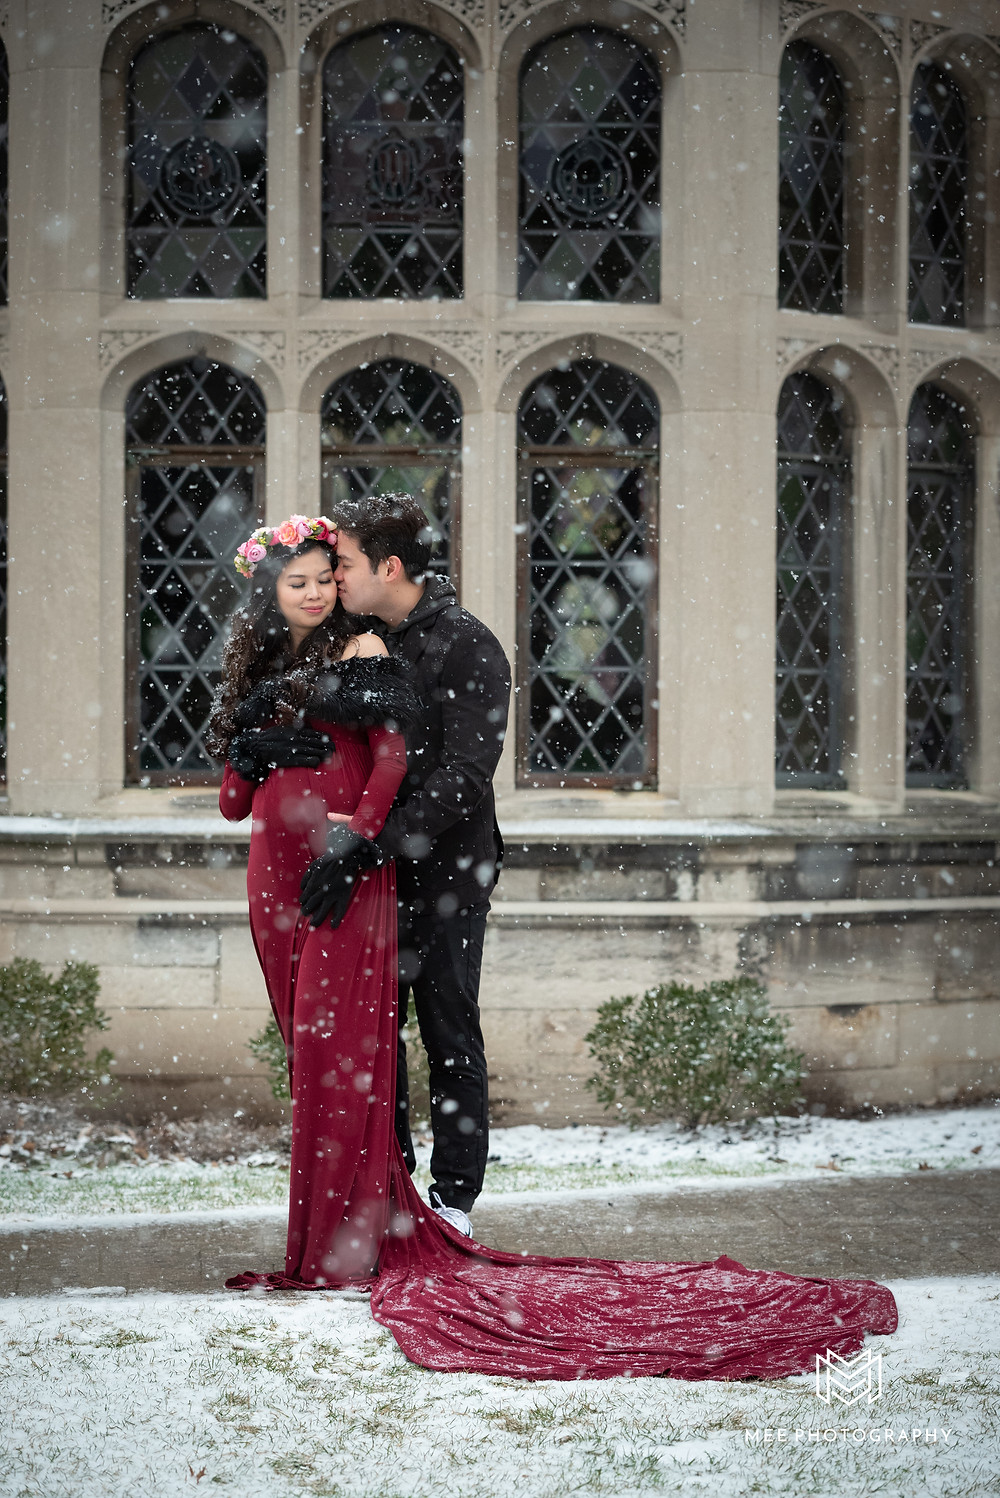 Hartwood Acres Mansion maternity photography in the snow